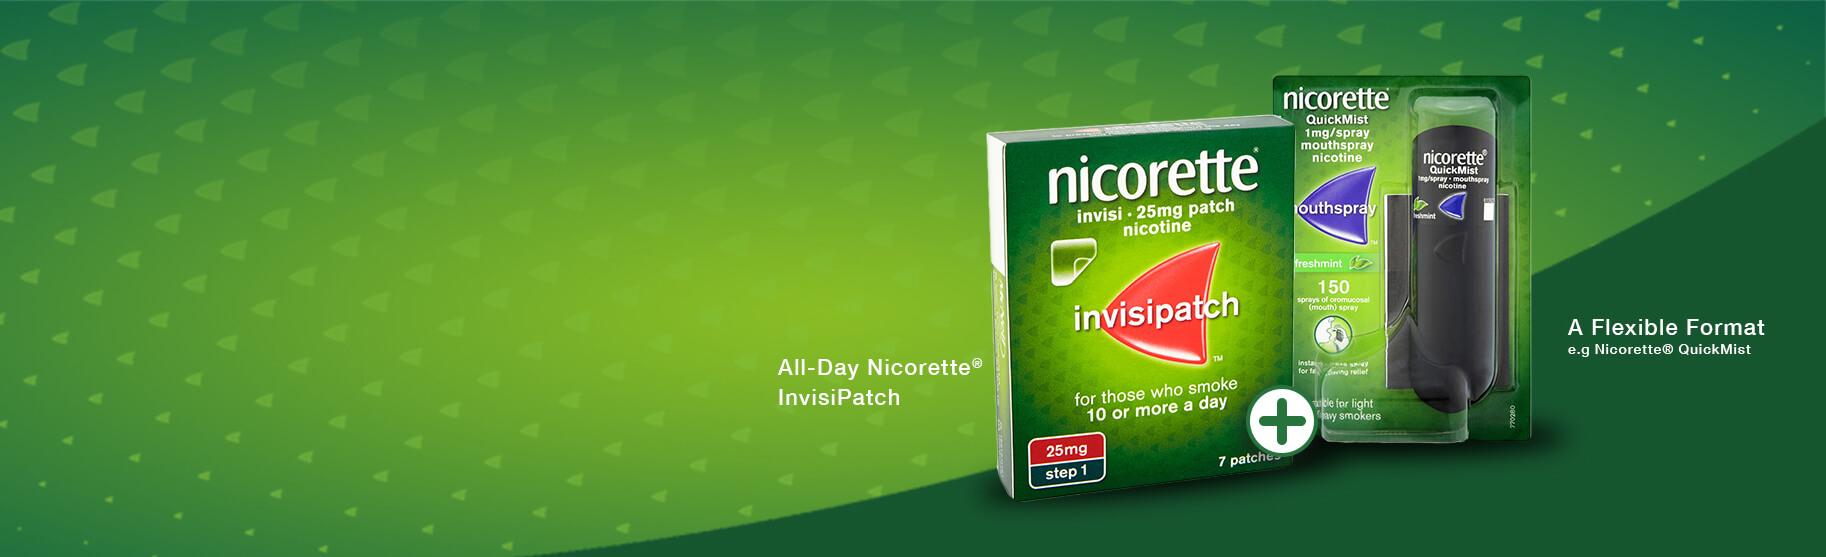 Get started on your quit journey with the Nicorette Quit Starter Bundle. By using two forms of Nicotine Replacement Therapy (NRT) products in combination, you're more likely to quit for good.* This is why we have developed the Nicorette® Quit Starter Bundle, to get you started on your journey with an effective method complete craving control.*Versus using one form of NRT alone. Combination must include Nicorette® InvisiPatch